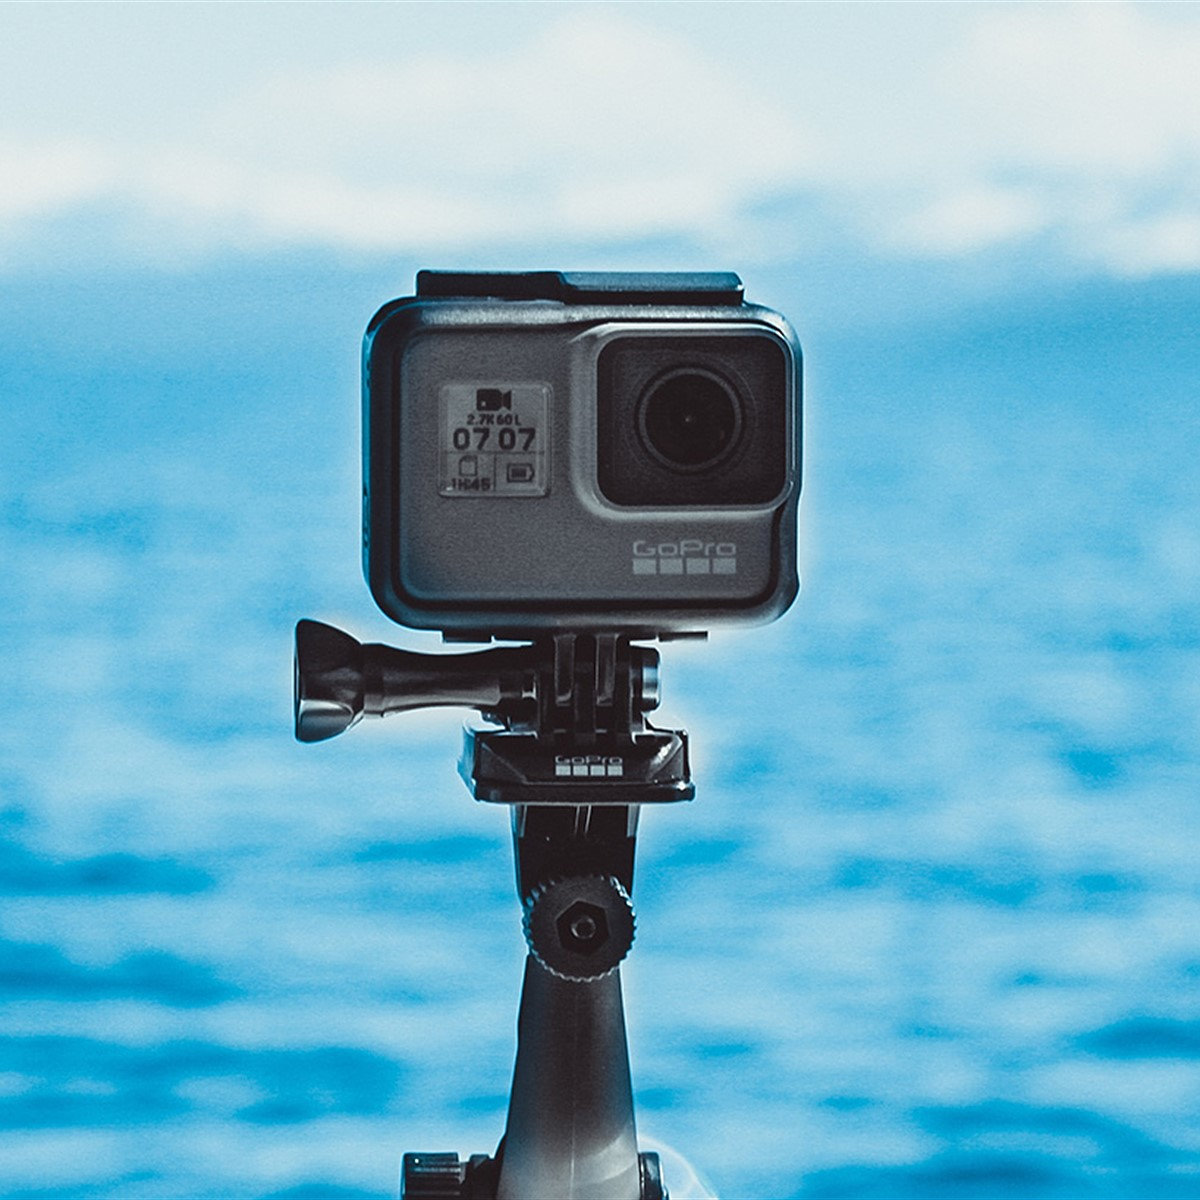 GoPro Q2 2018 results show improvement: new products